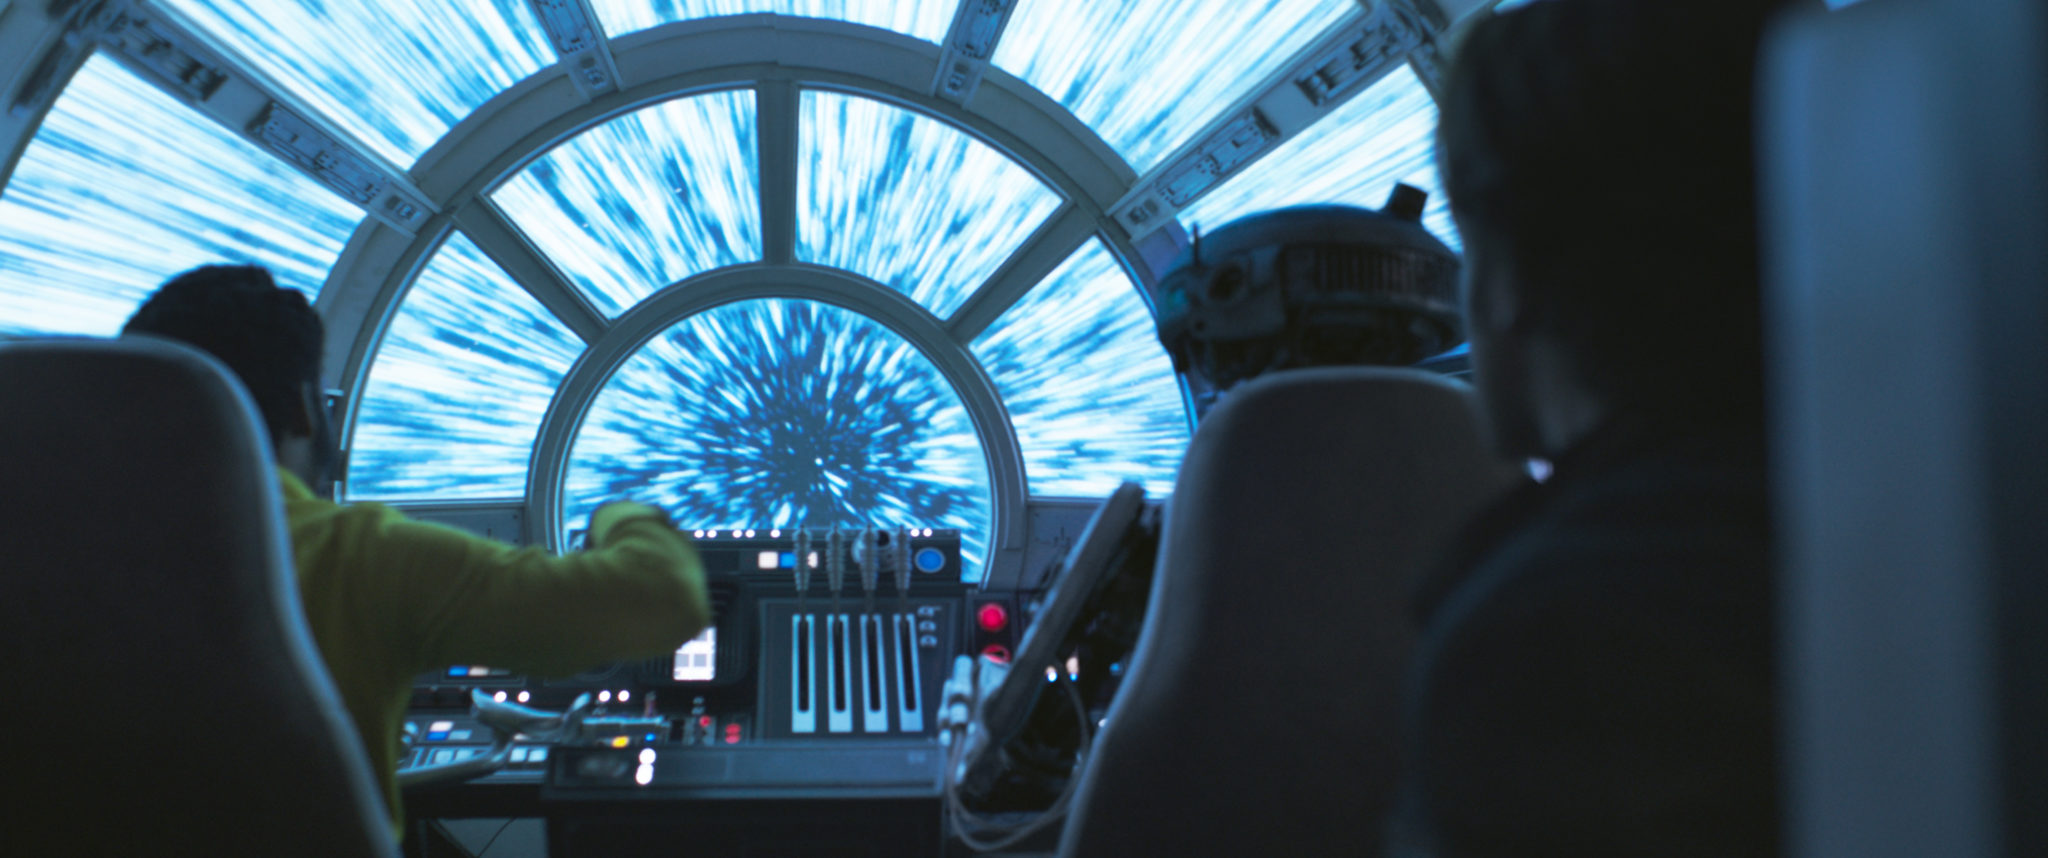 The Millennium Falcon jumps into hyperspace